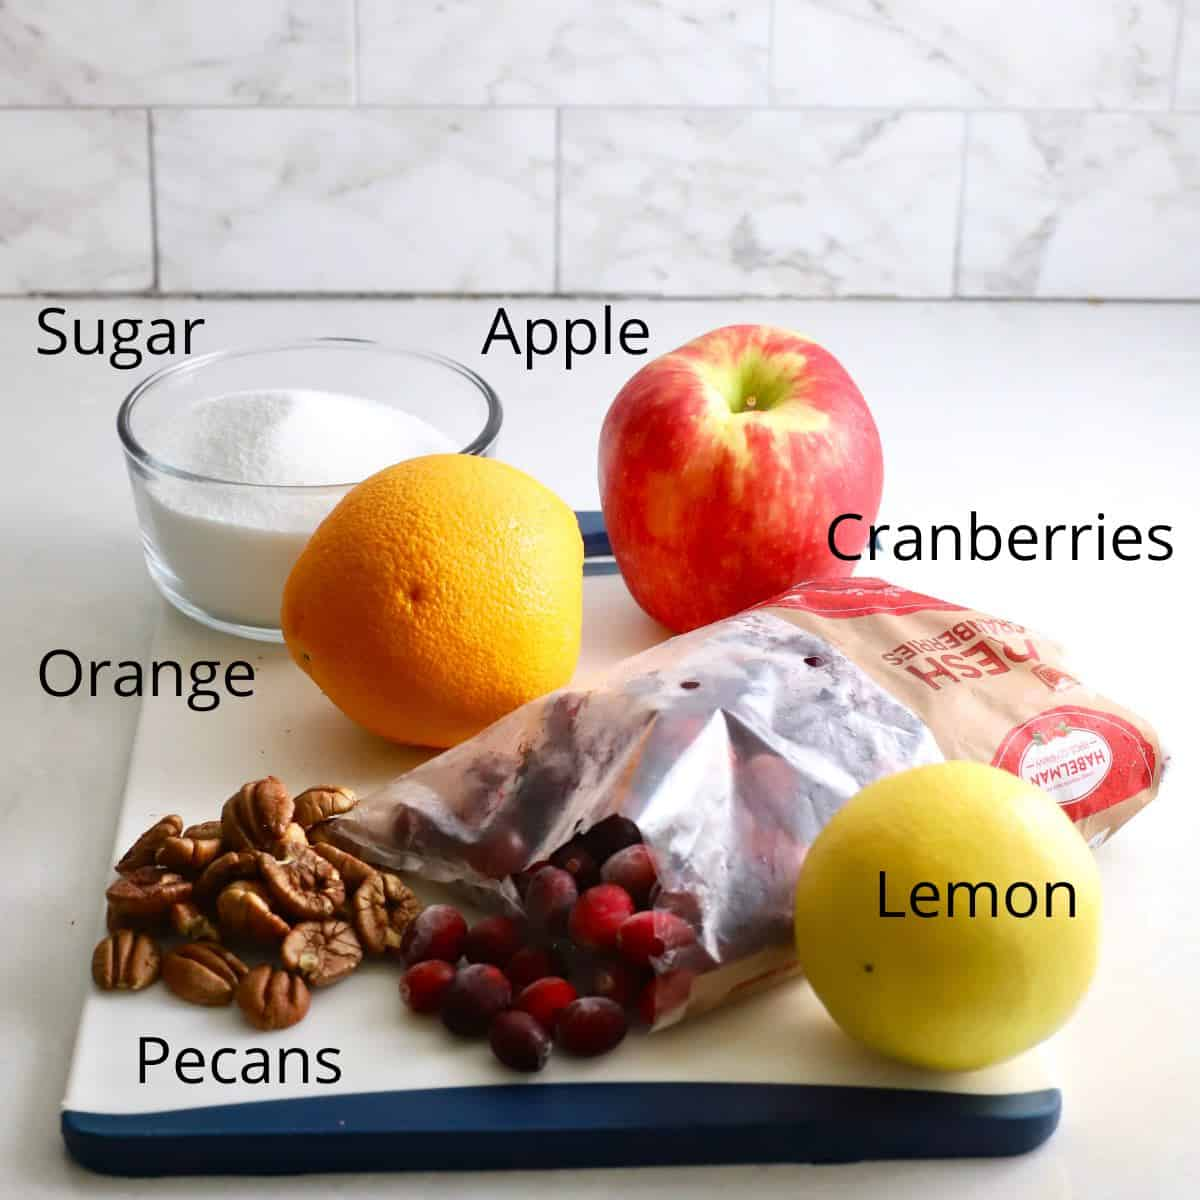 A bag of cranberries, an orange, apple, pecans, and lemon on a cutting board.